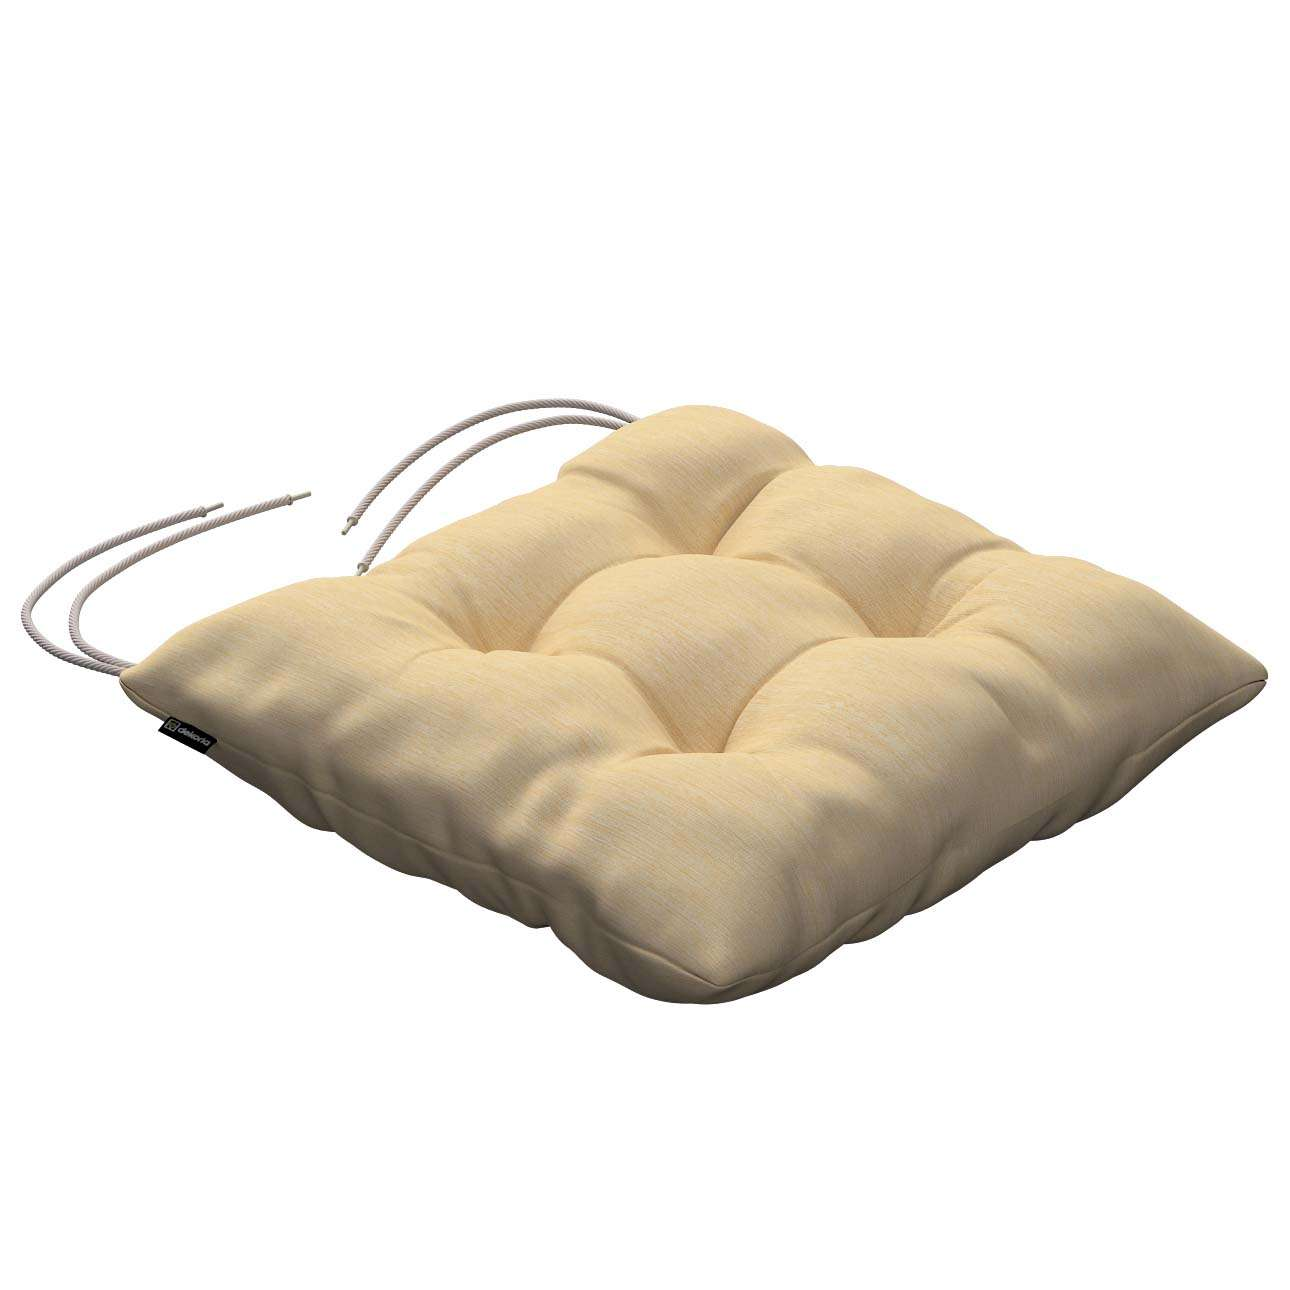 Jack seat pad with ties 40 × 40 × 8 cm (16 × 16 × 3 inch) in collection Madrid, fabric: 160-49